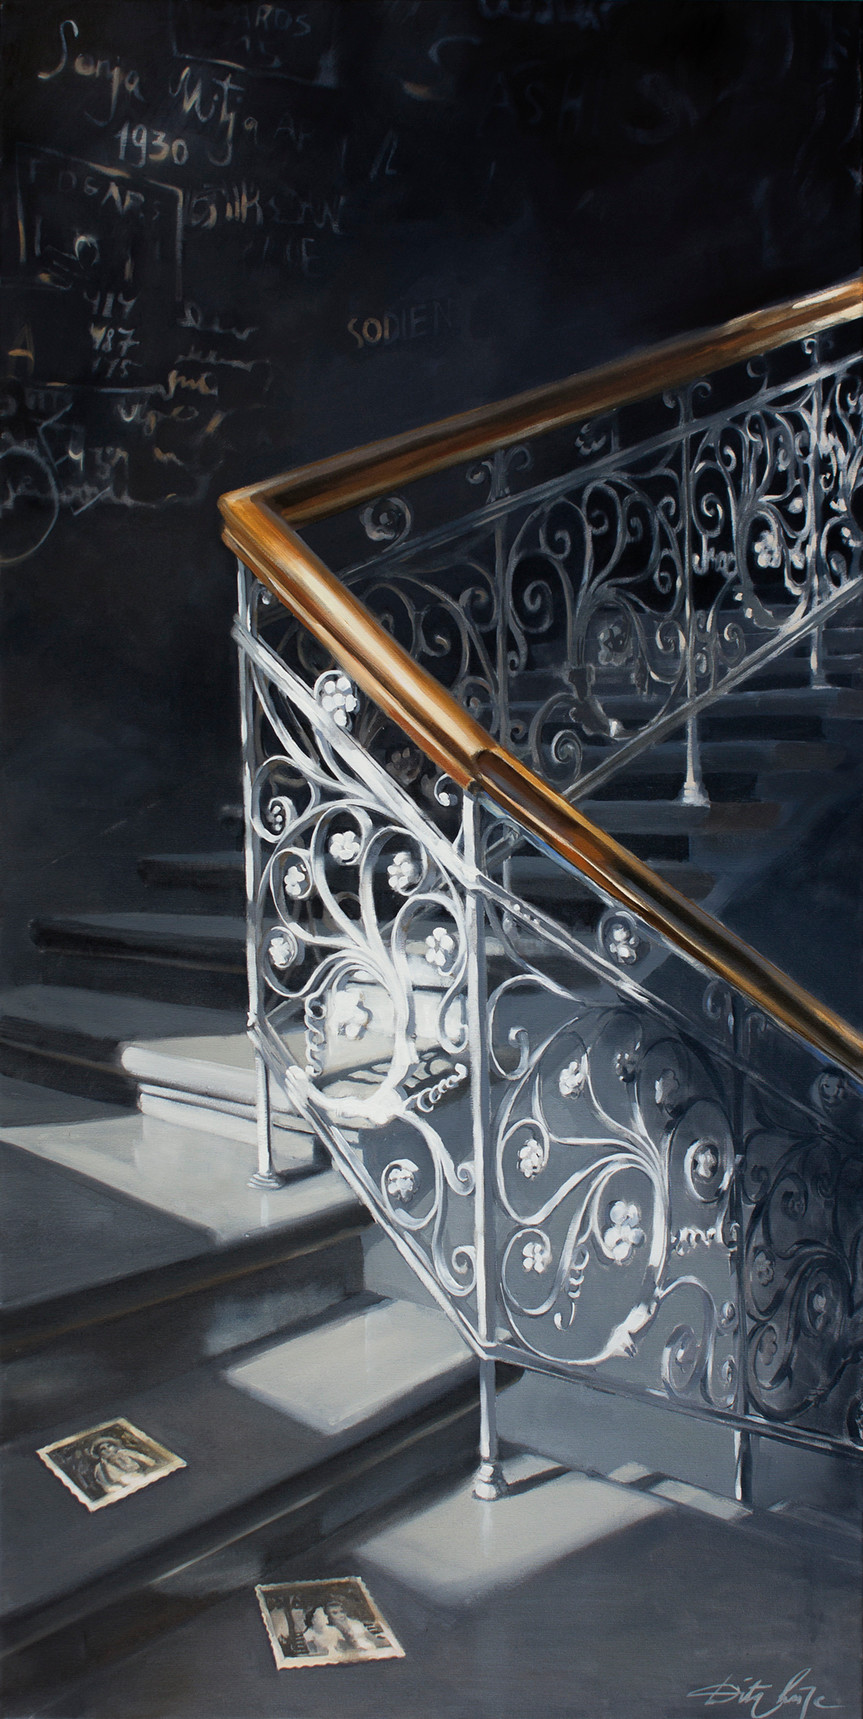 Dita Luse - Story of the stairs